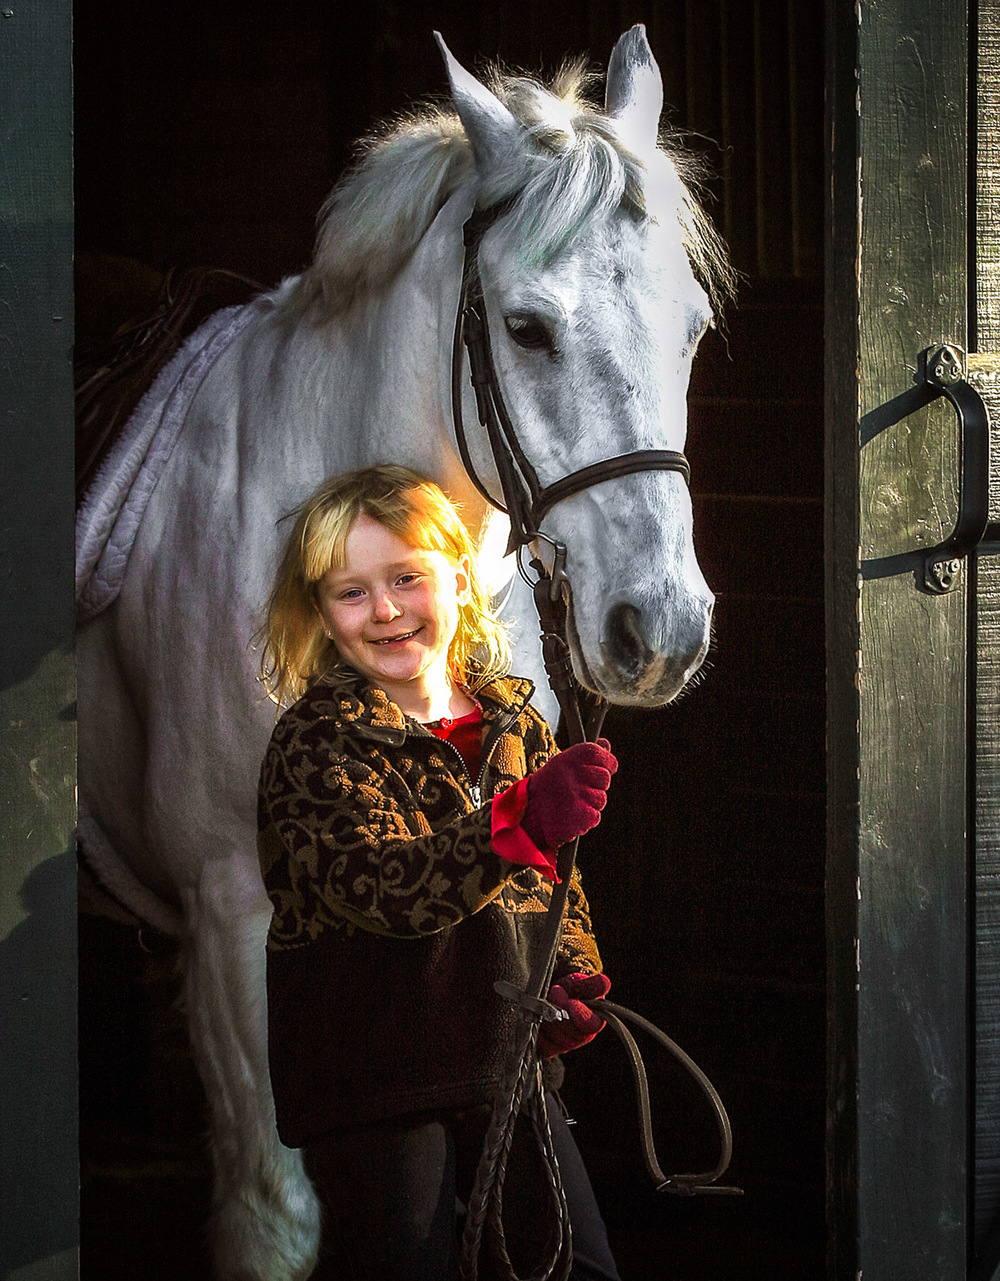 Young-Girl-holds-White-Horse.jpg